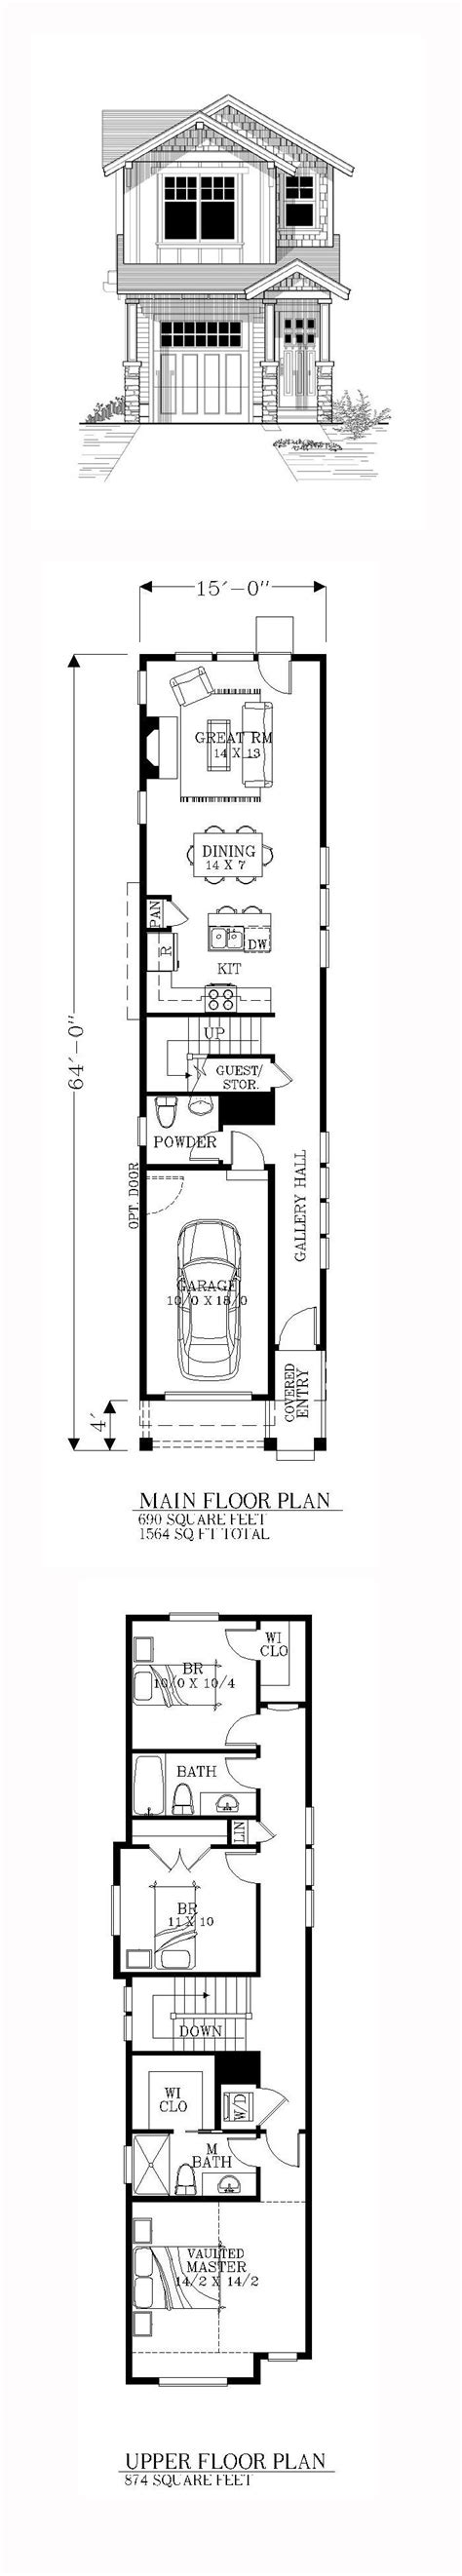 Narrow Home Plans 25 Best Ideas About Narrow House Plans On Pinterest Narrow Lot House Plans Shotgun House And